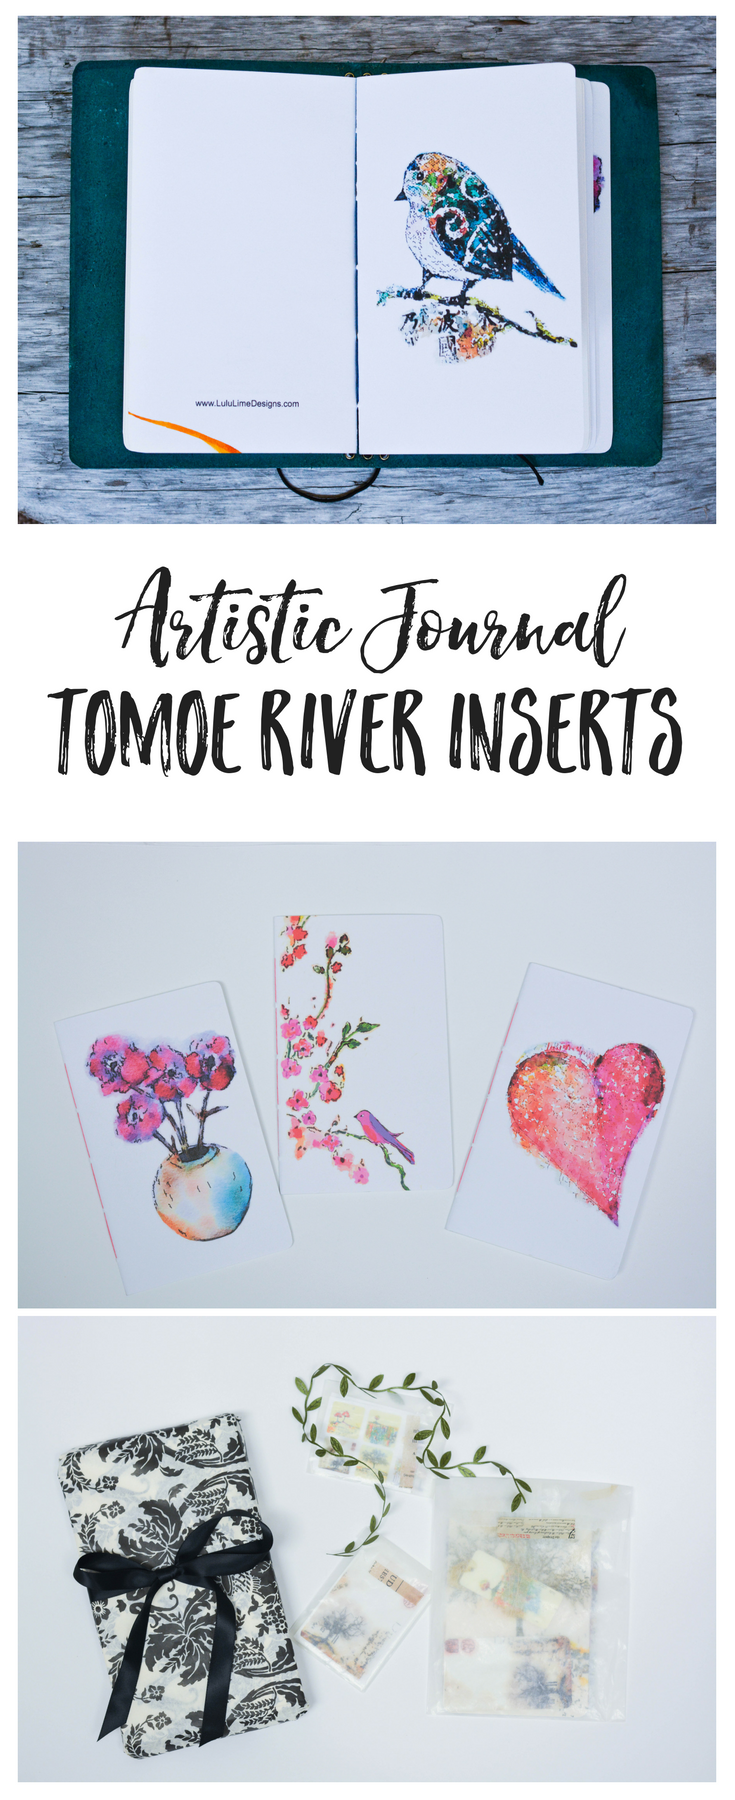 I love these stunning art journals with the decadent Tomoe River paper! tomoe river inserts | tomoe river notebooks | tomoe river writing | tomoe river journals | lulu lime designs | custom inserts | travelers notebook inserts | planner inserts | journal art | art journal | art journal inserts | chic sparrow inserts | midori inserts